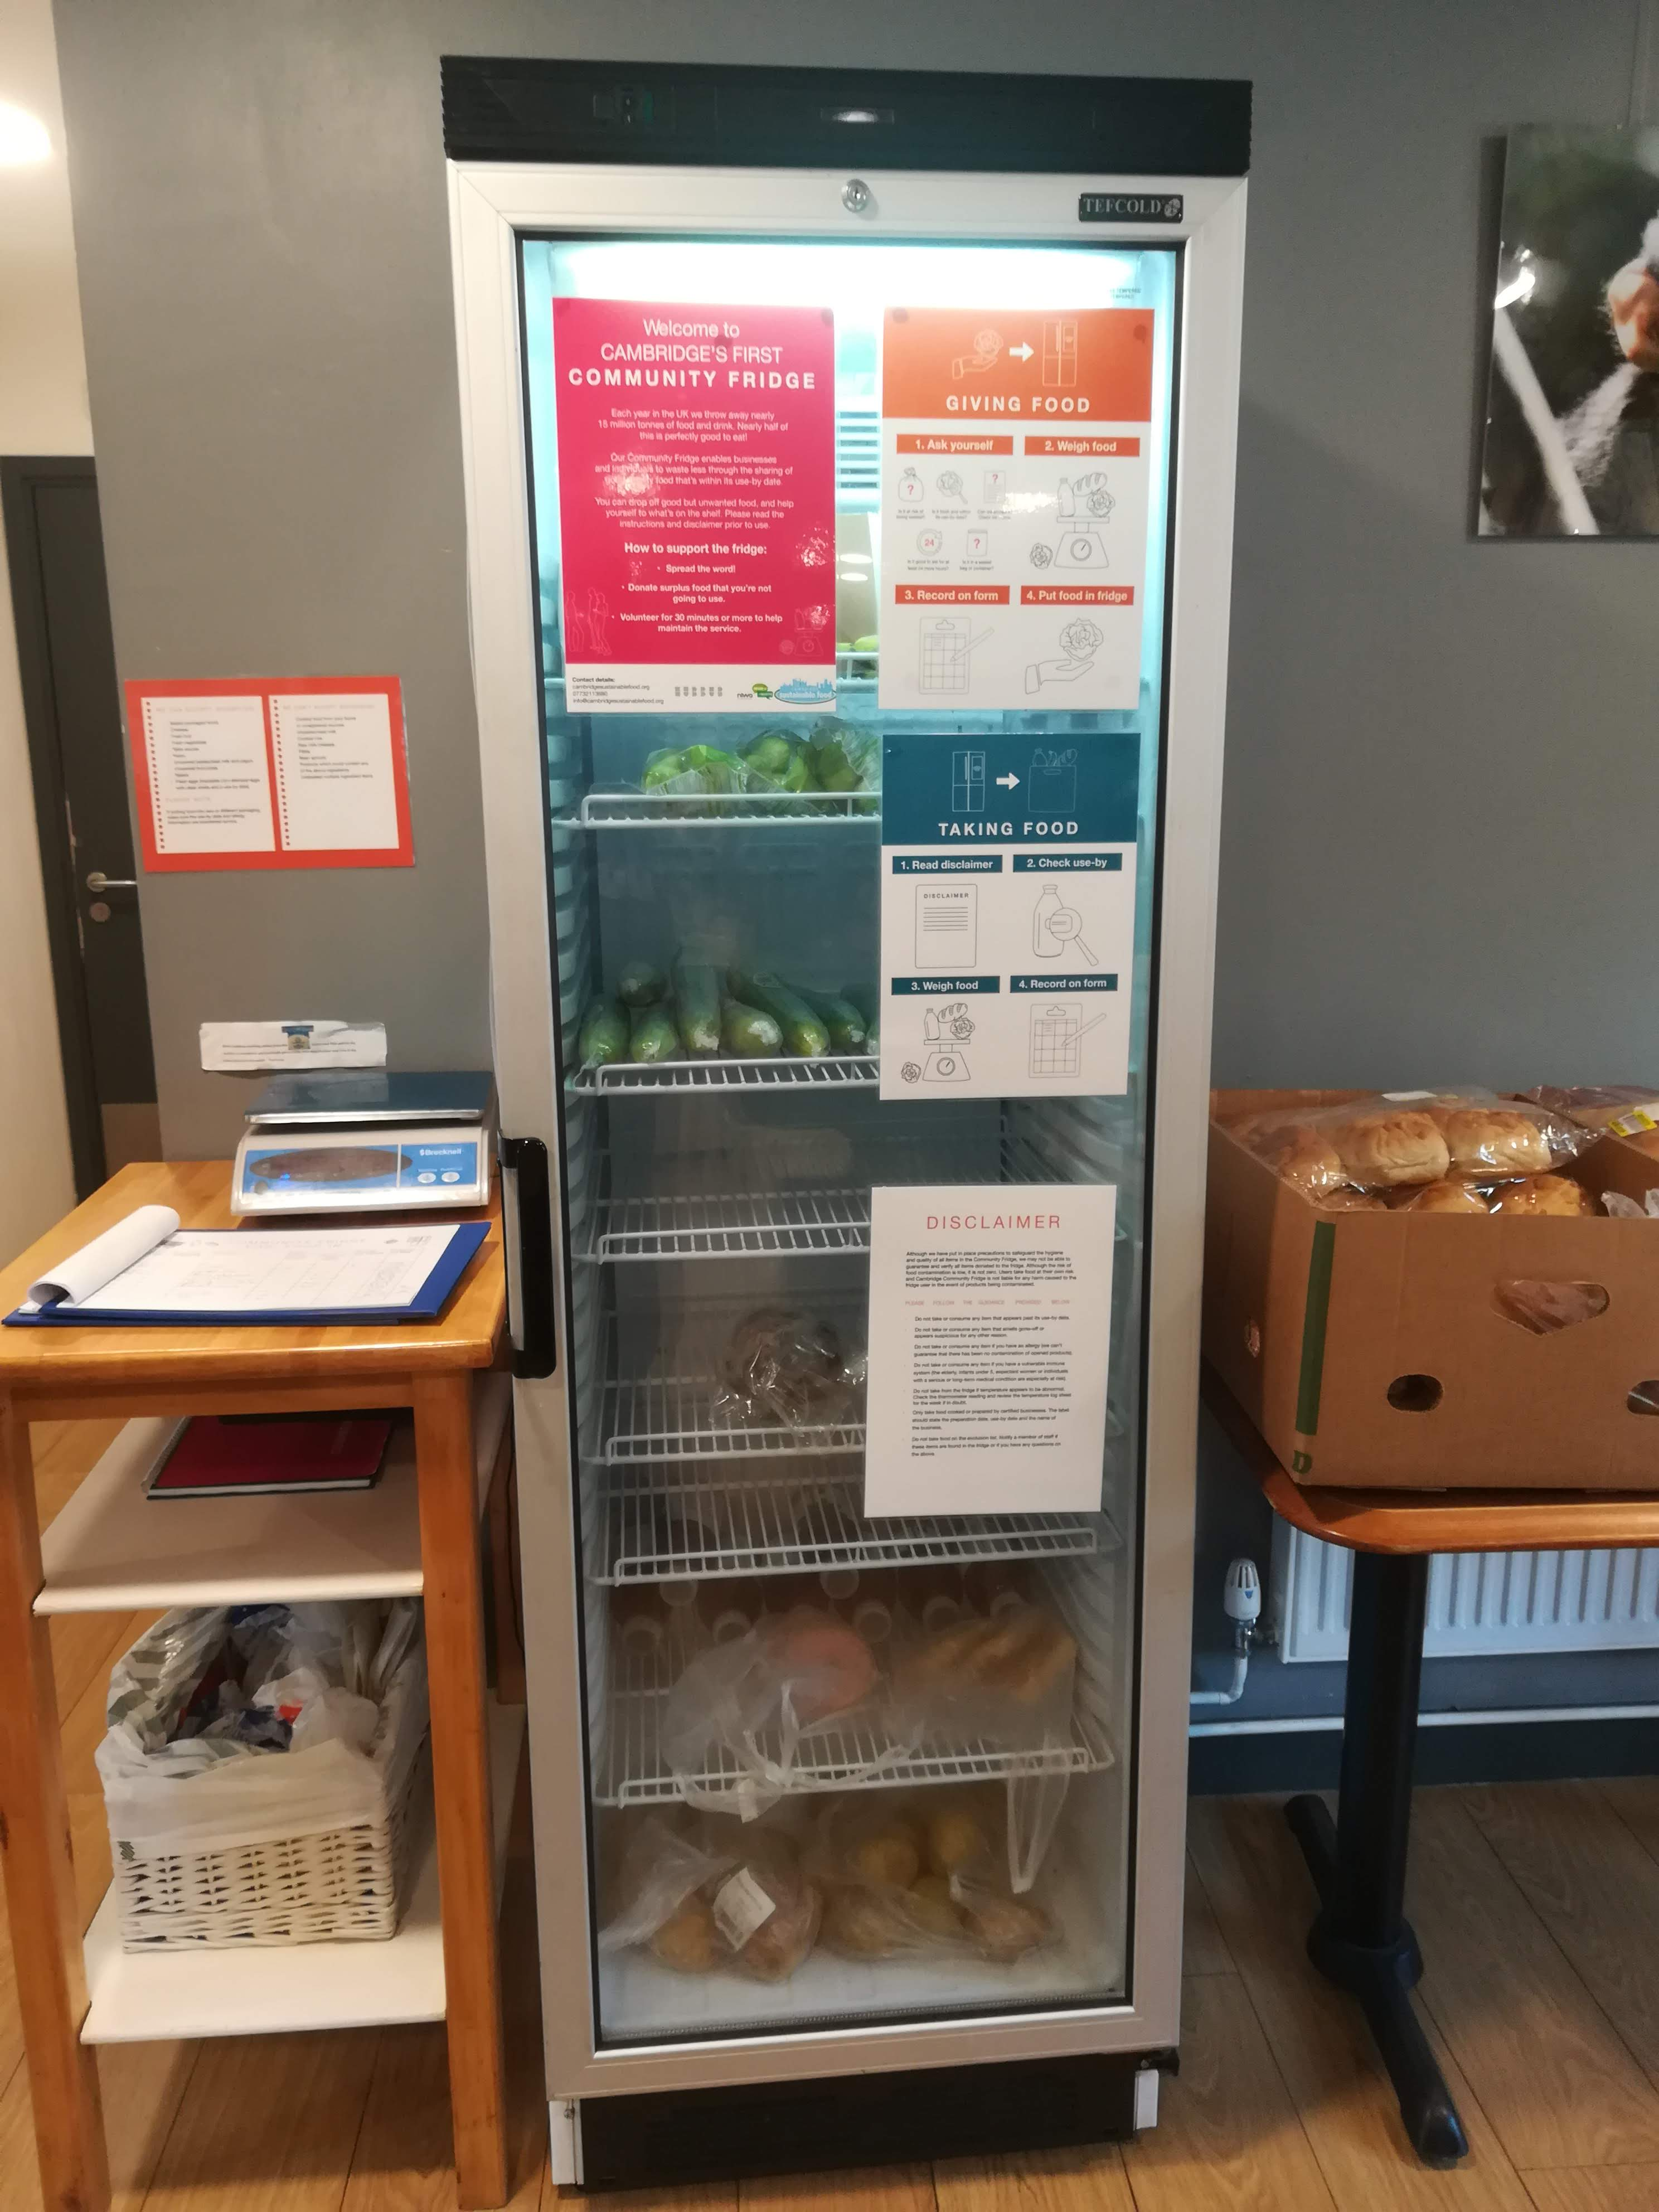 A tall community fridge in a cafe